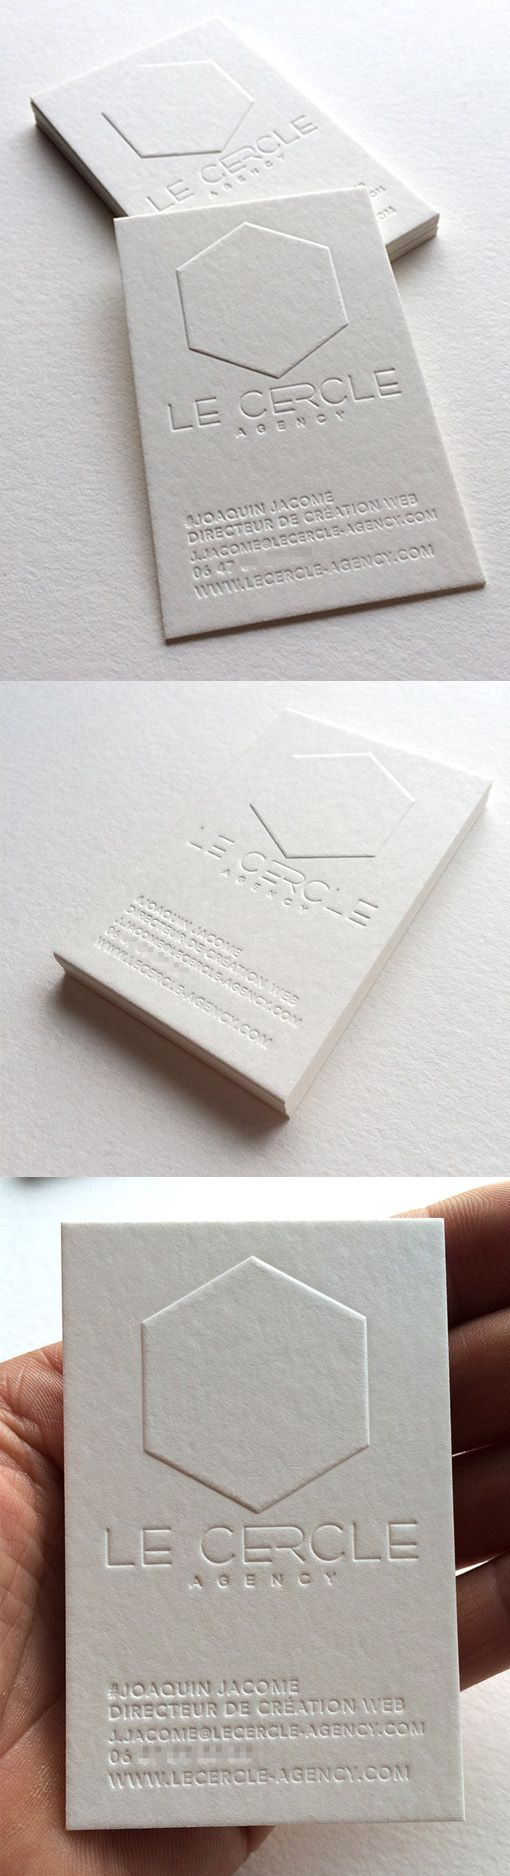 Pure White Embossed Minimalist Letterpress Business Card For A Creative Agency